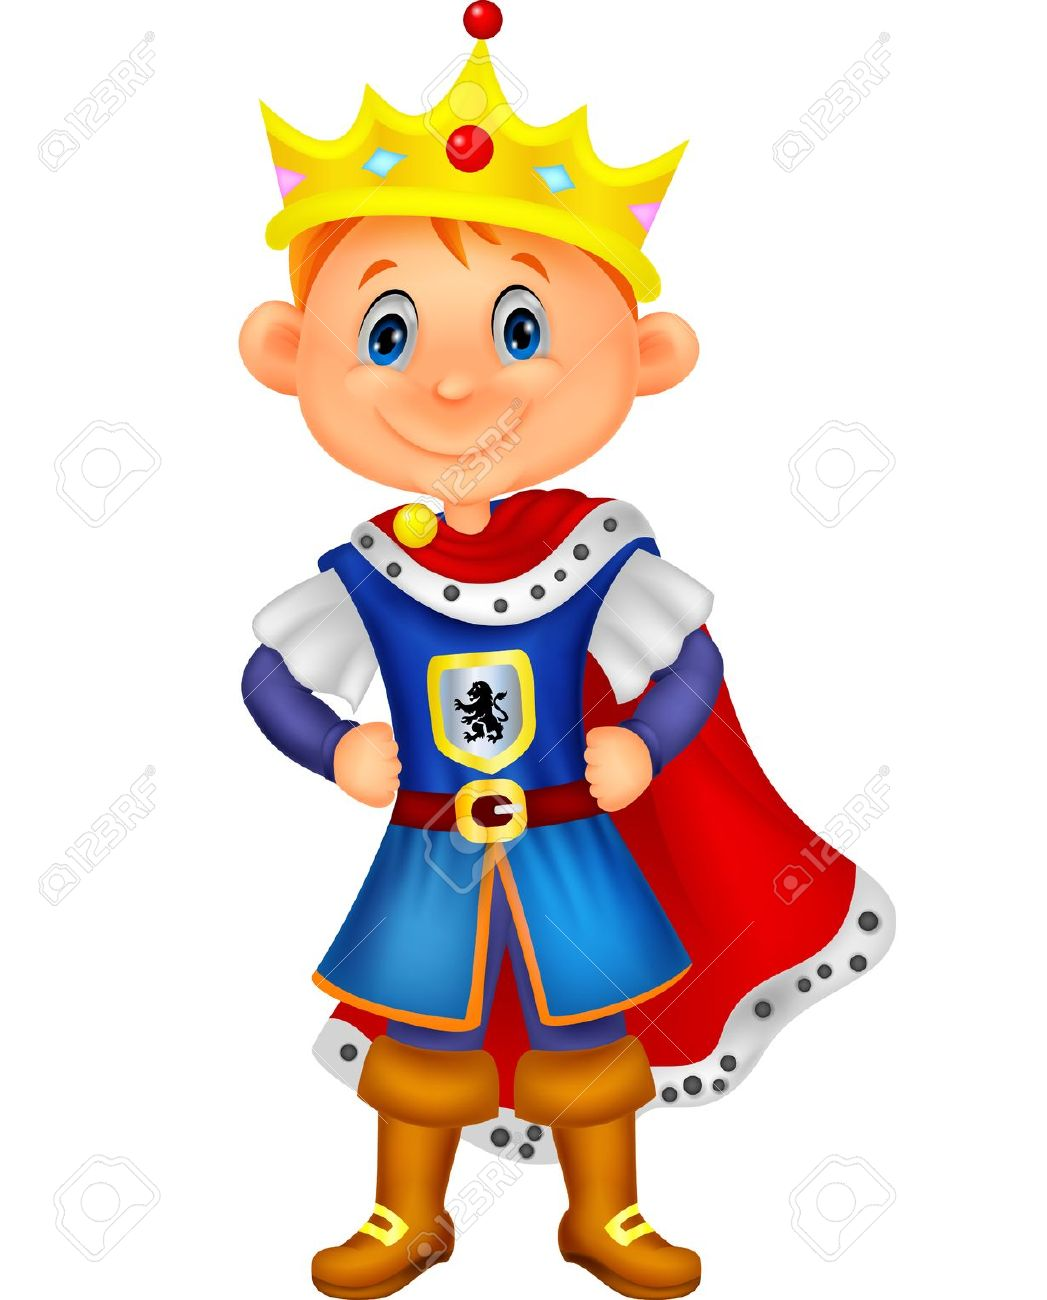 Clipart king banner freeuse library Indian king clipart - ClipartFest banner freeuse library